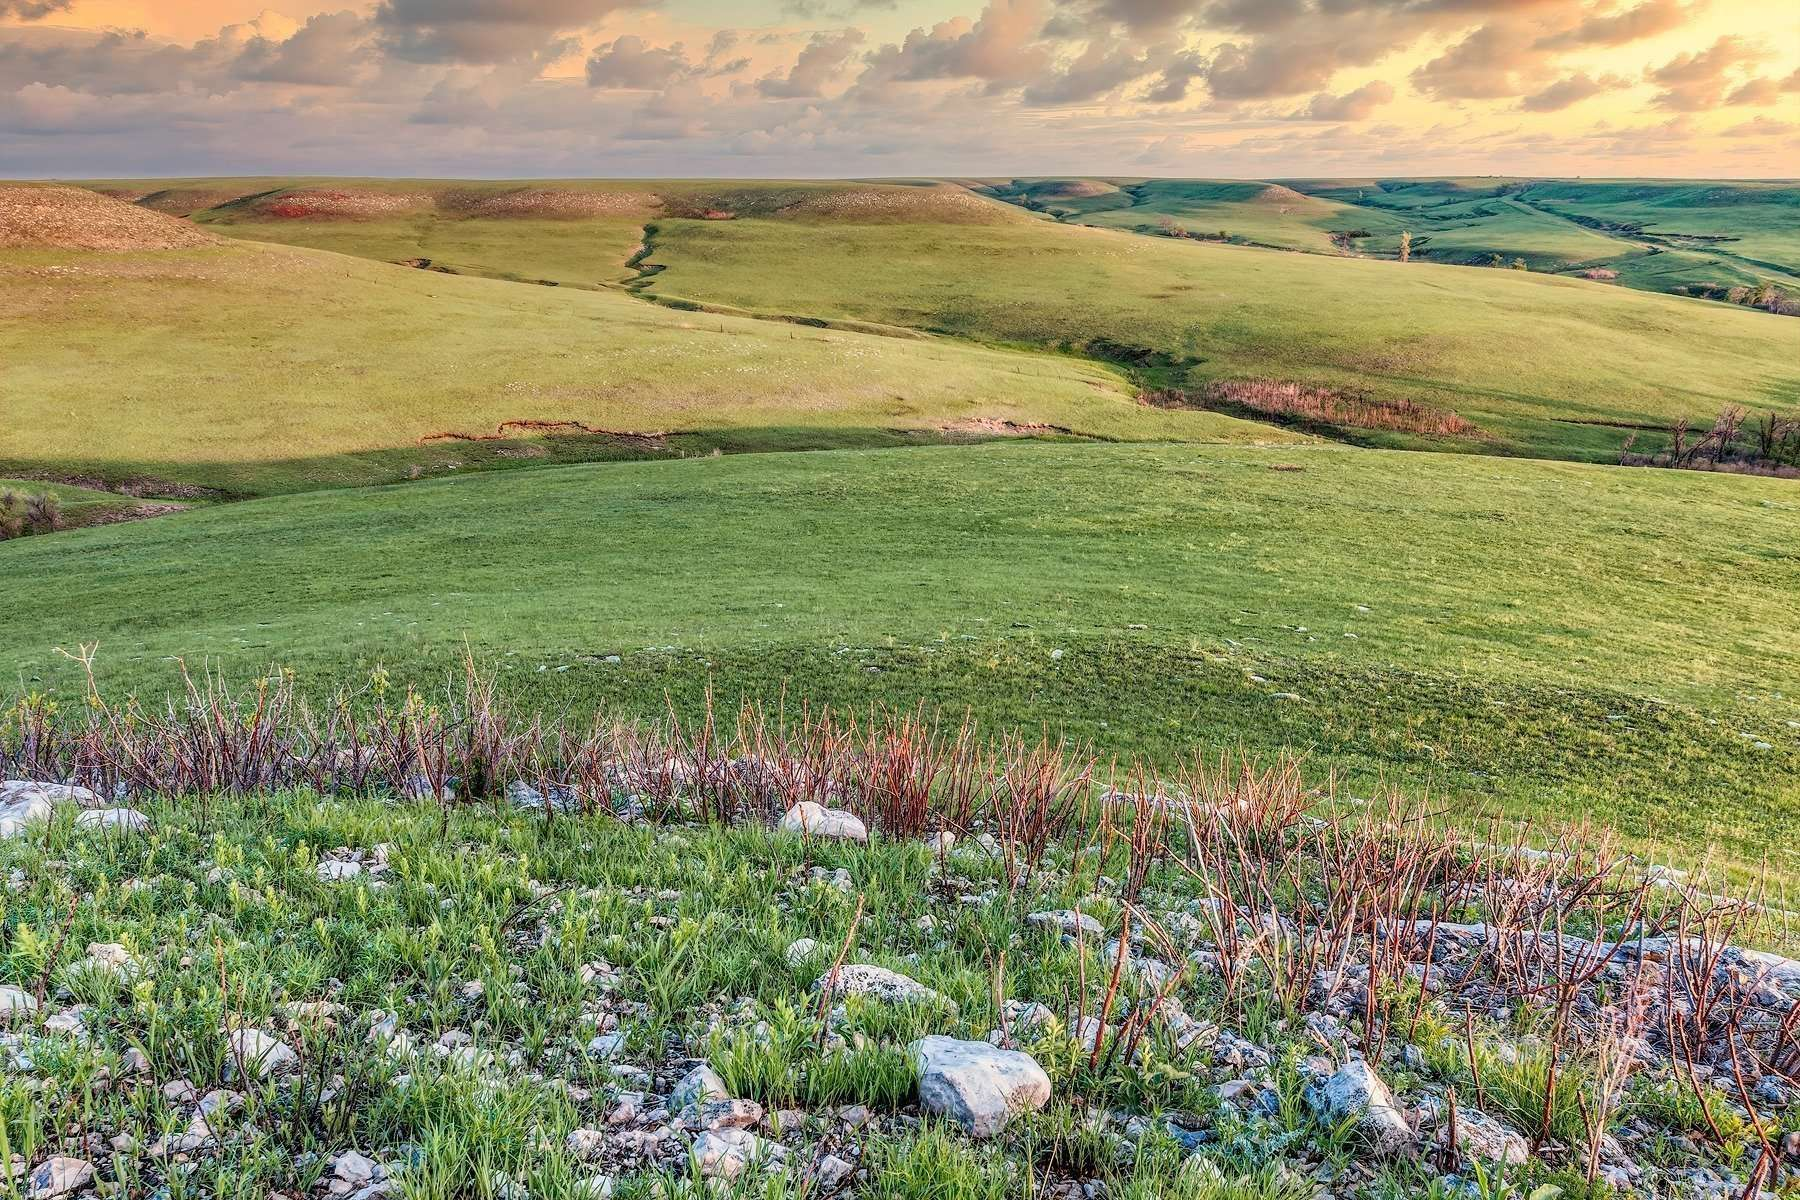 Springtime across the Kansas Flint Hills. Can you feel the cool breeze? Smell the rich soil of the prairie? Hear the distant Meadowlarks?